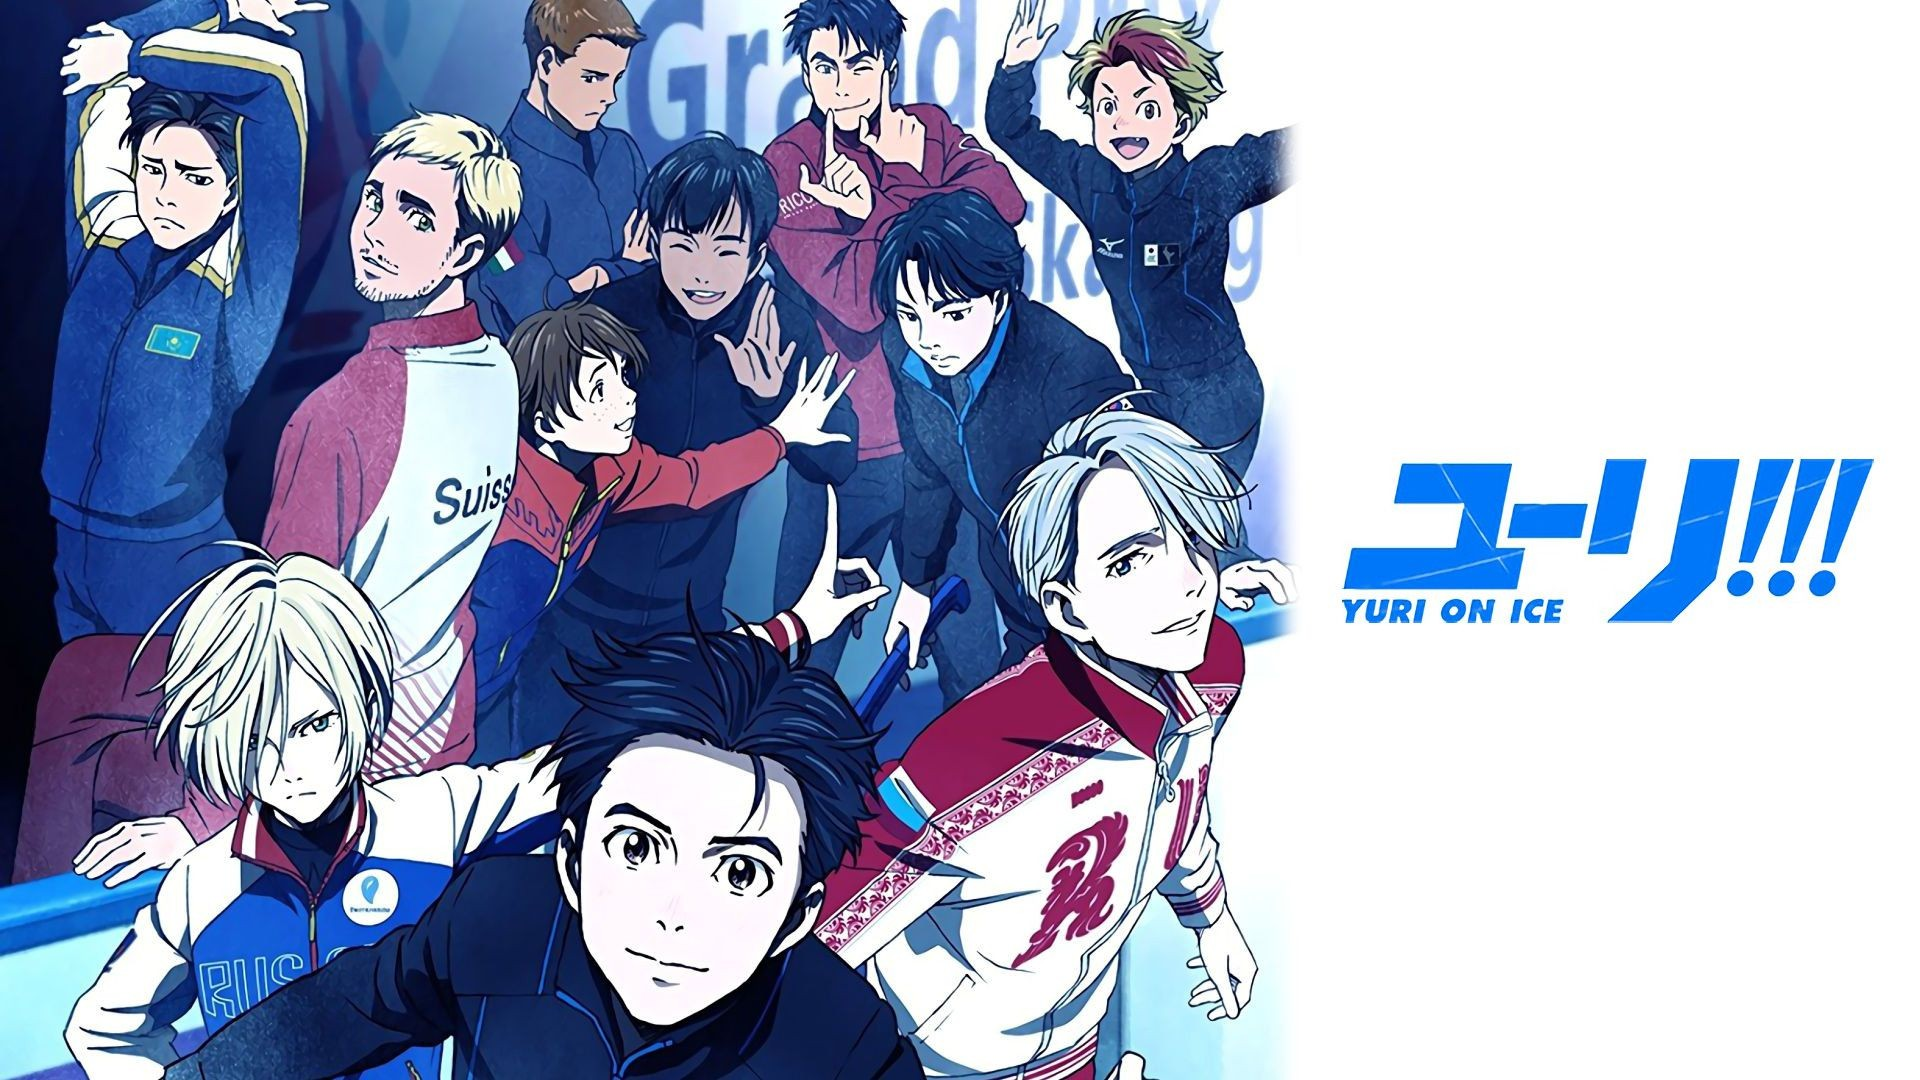 Yuri On Ice Film Release Date Revealed Virtual Haven